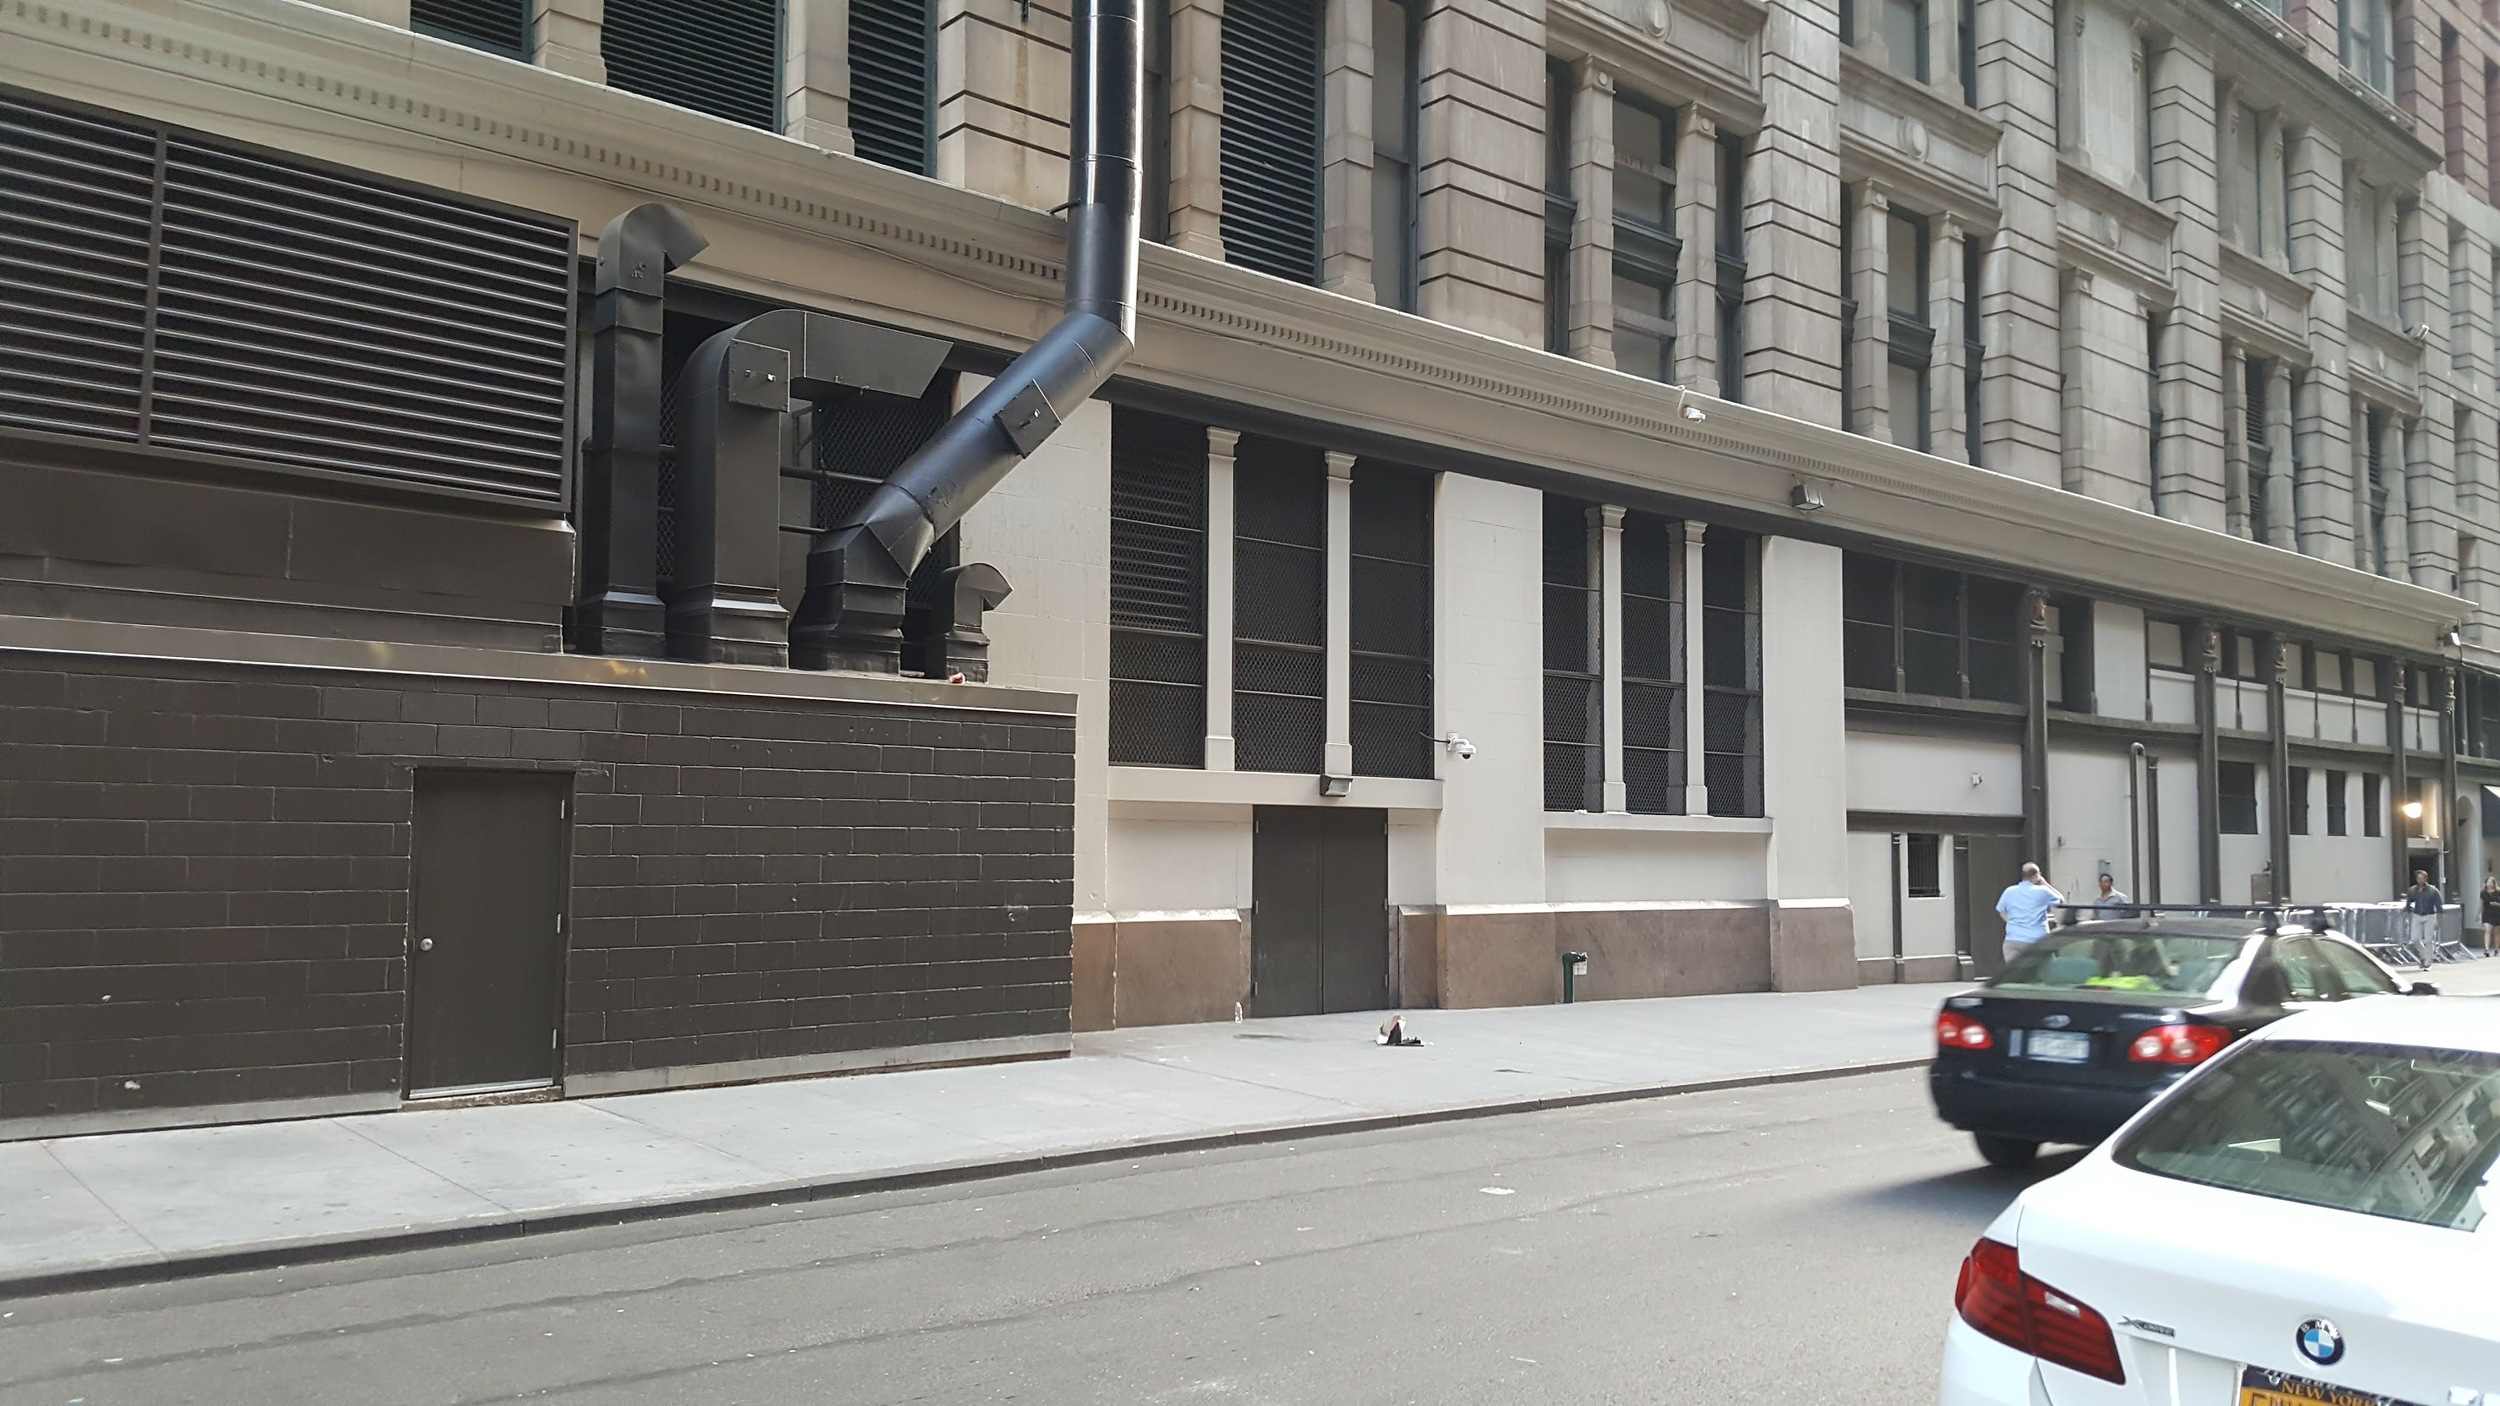 The 35th Street side of Macy's with no doors.